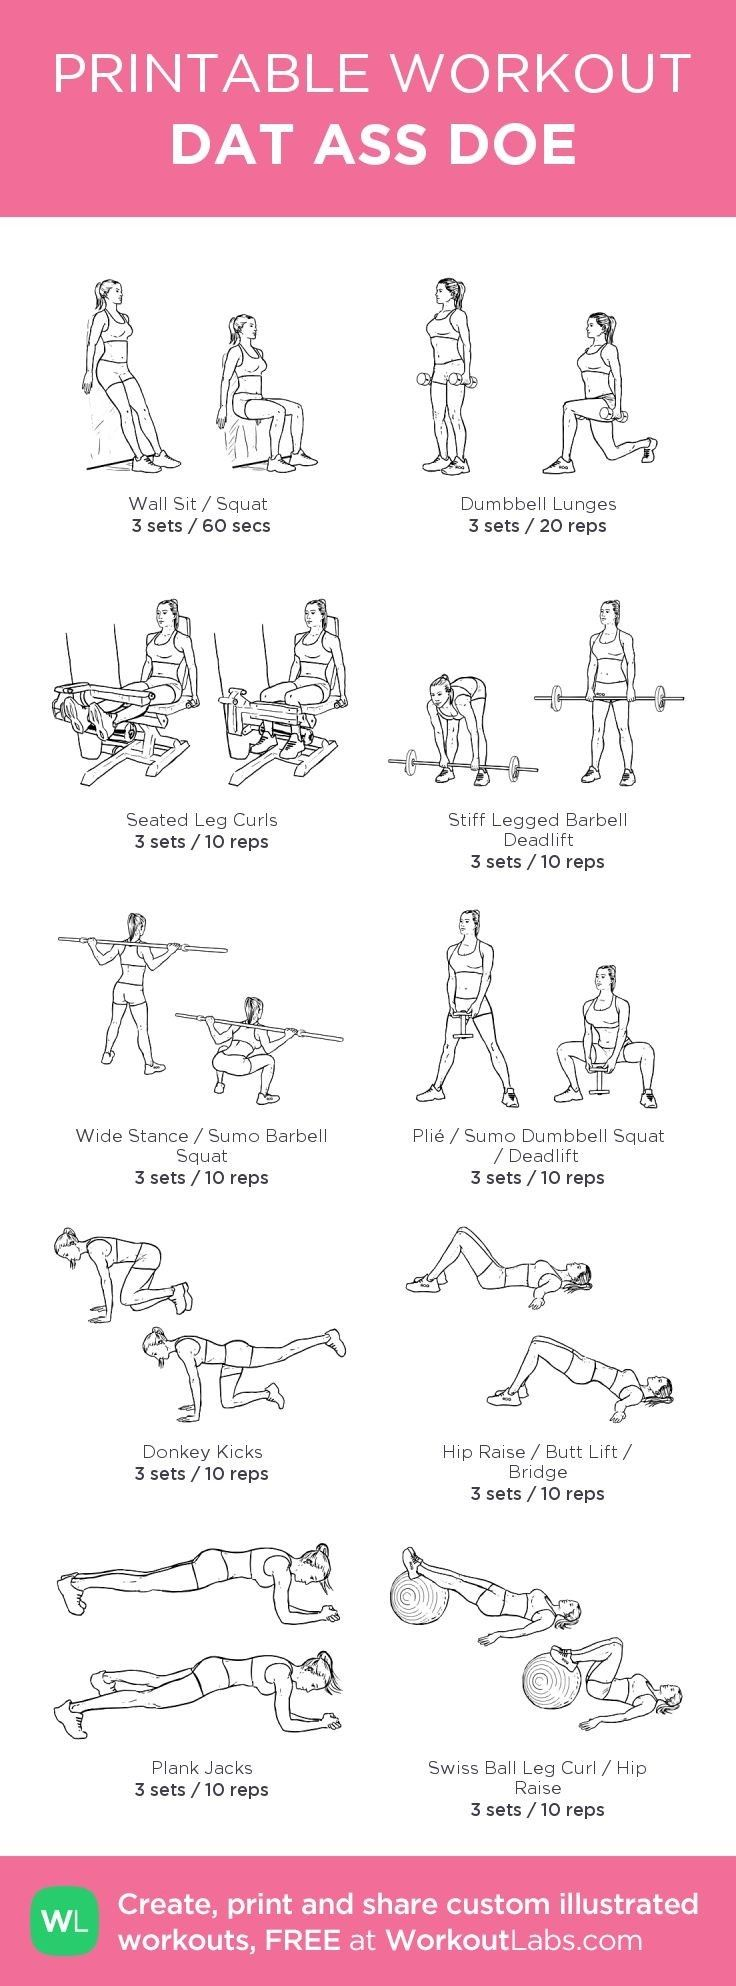 Pin by Maria Marin on Workout | Fitness, Workout, Printable